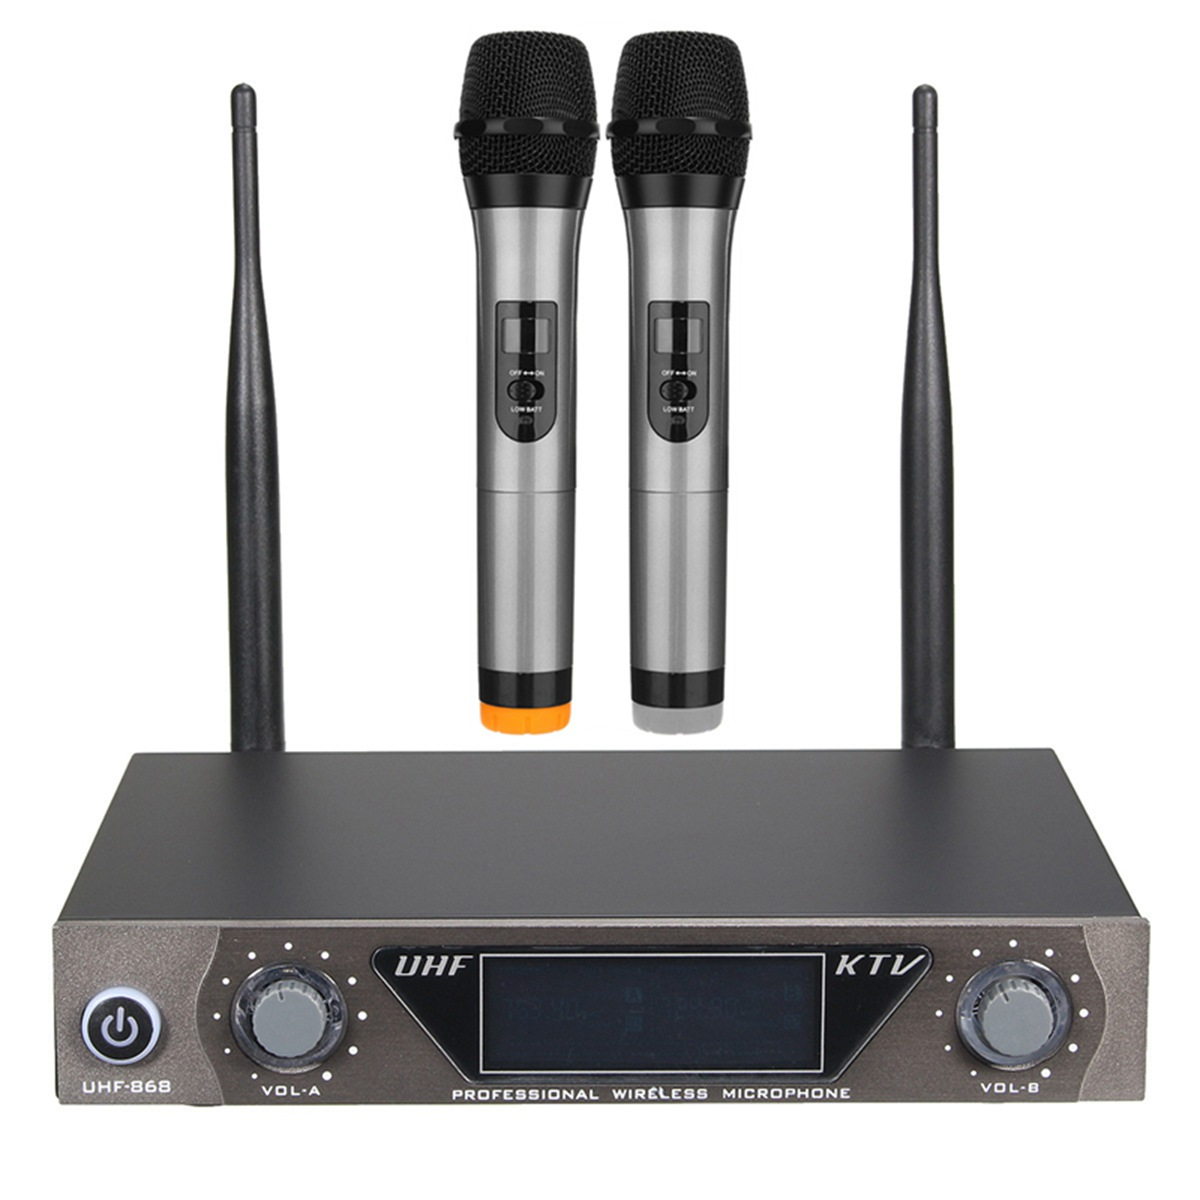 LEORY Wireless UHF 2 Channel Microphone System Cordless Twin Handheld Mic Transmitter Microphone Systerm for Karaoke KTV boya by whm8 professional 48 uhf microphone dual channels wireless handheld mic system lcd display for karaoke party liveshow